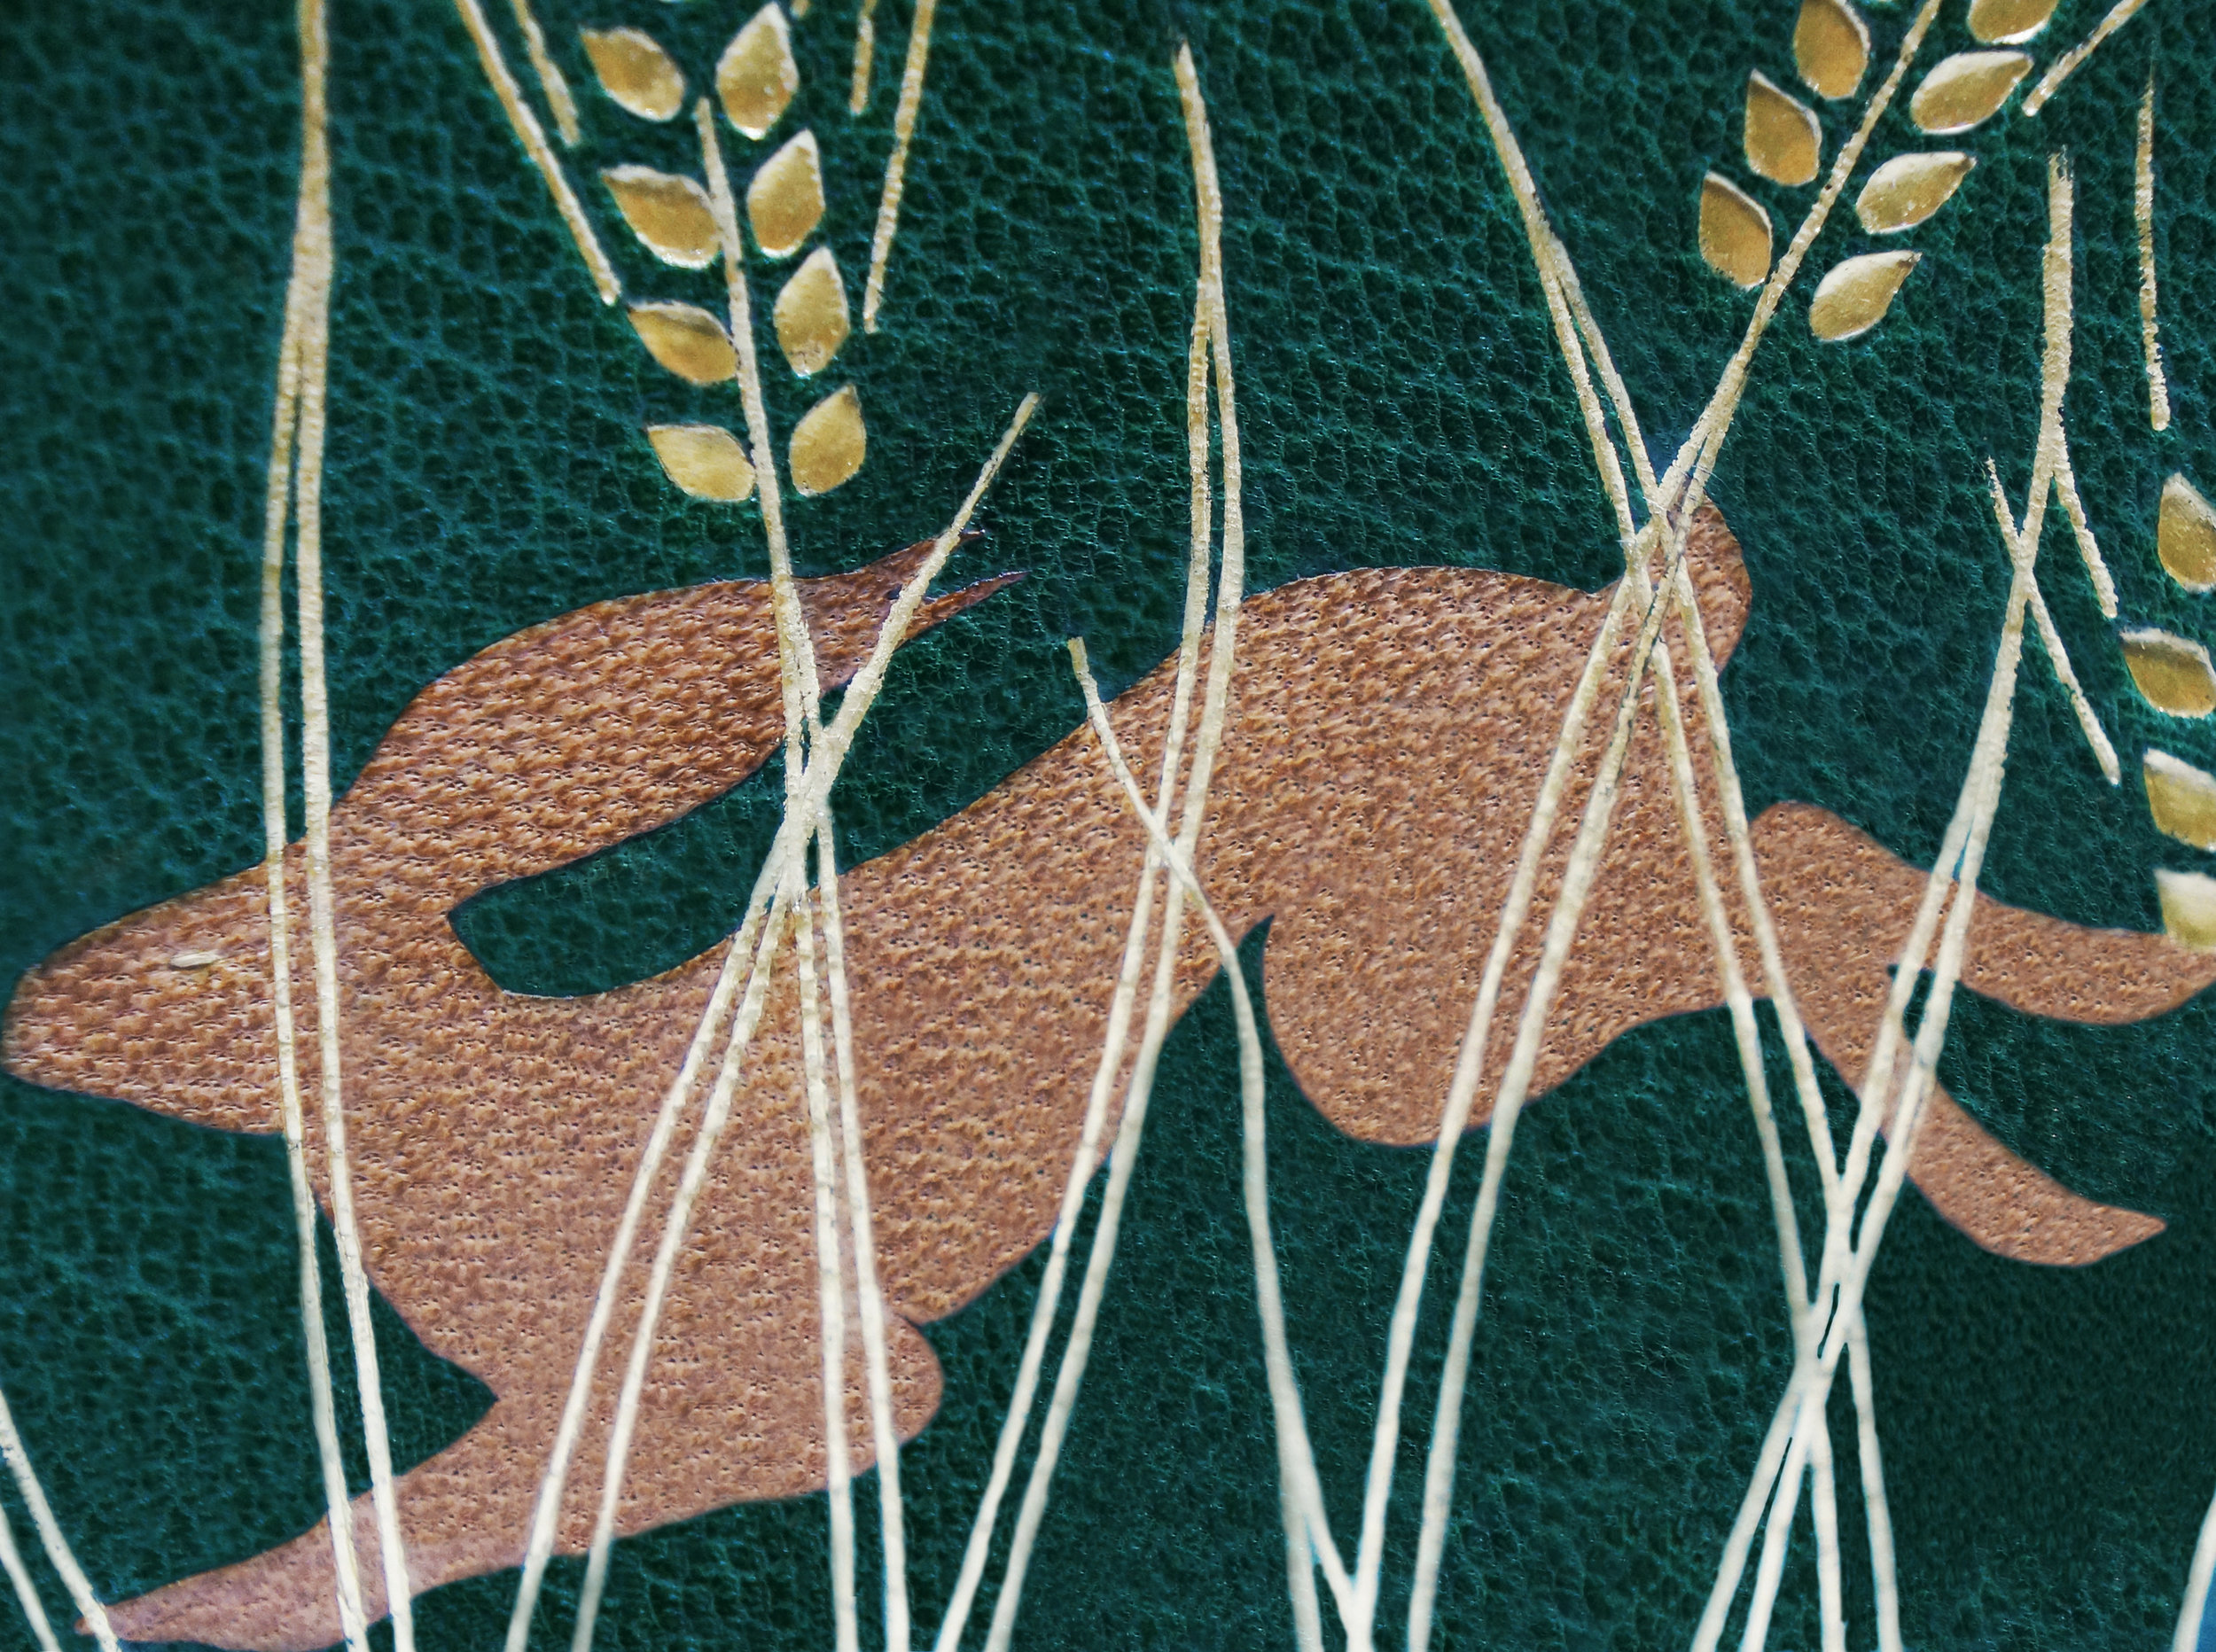 Hungry Grass detail